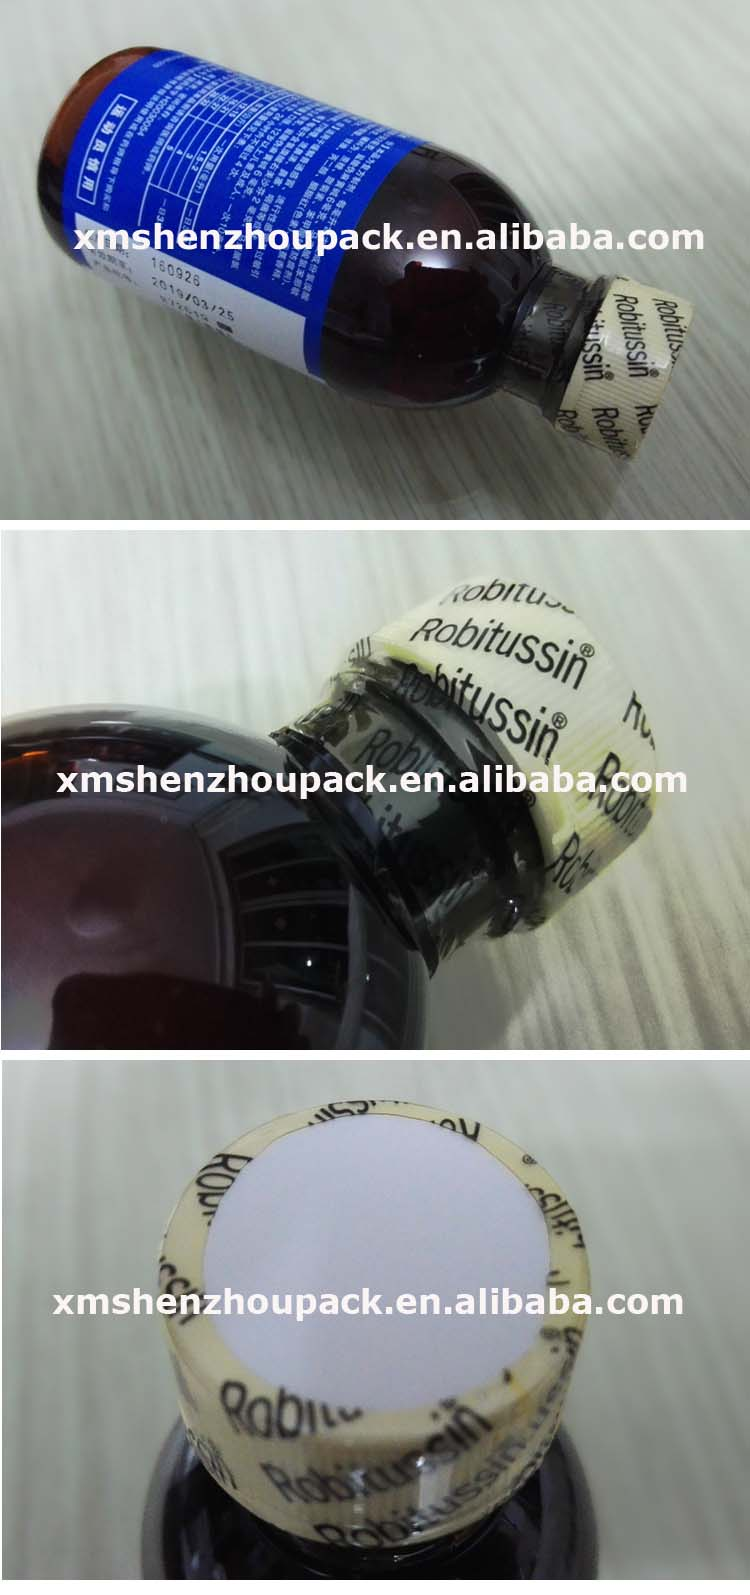 Automatic Bottle Banding Machine with PVC OPEG Shrink Sleeve Band Label Cap Seal Tamper Evident for Plastic Glass Container